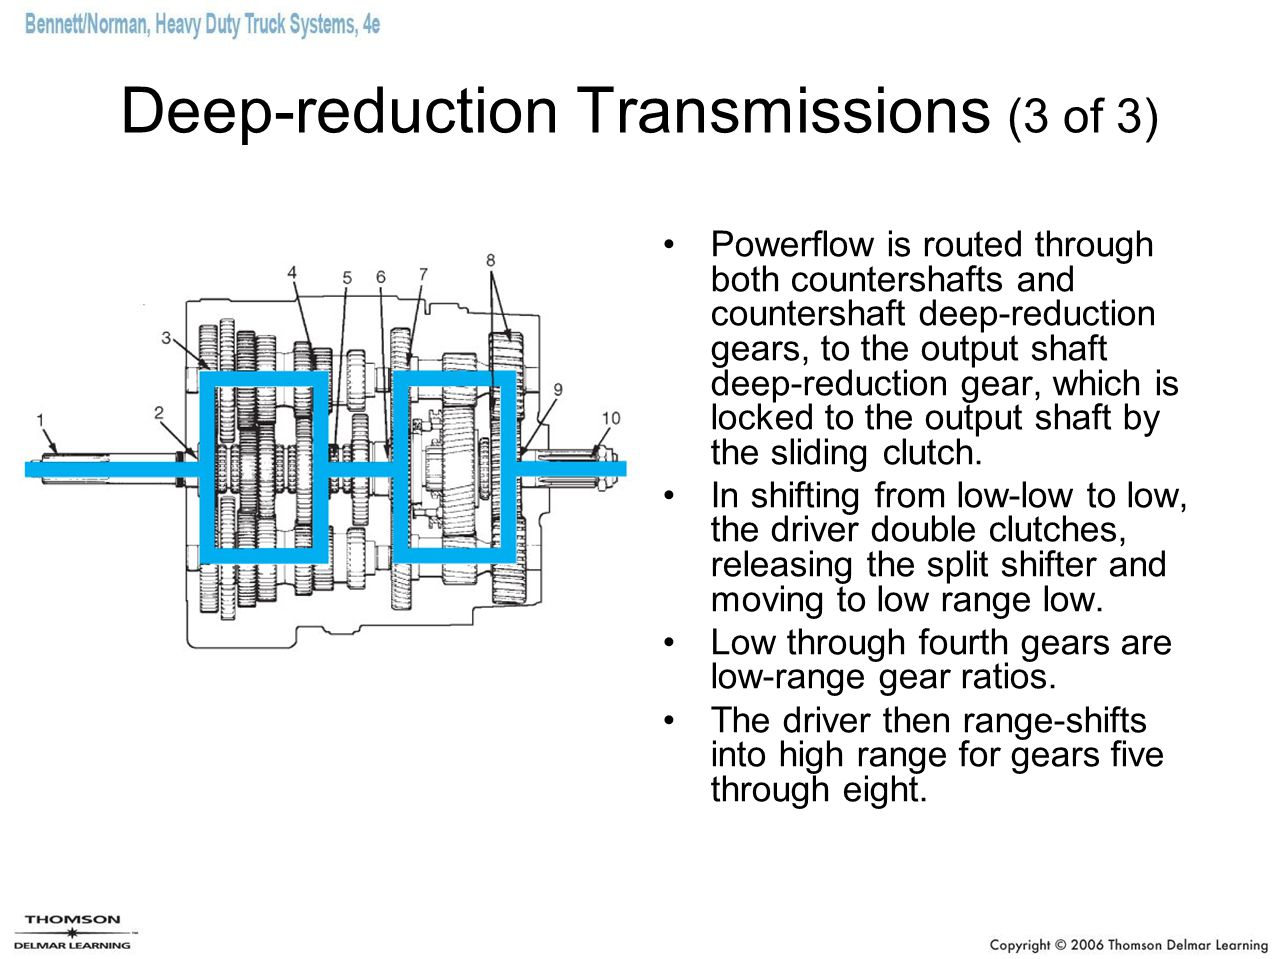 Deep-reduction Transmissions (3 of 3)